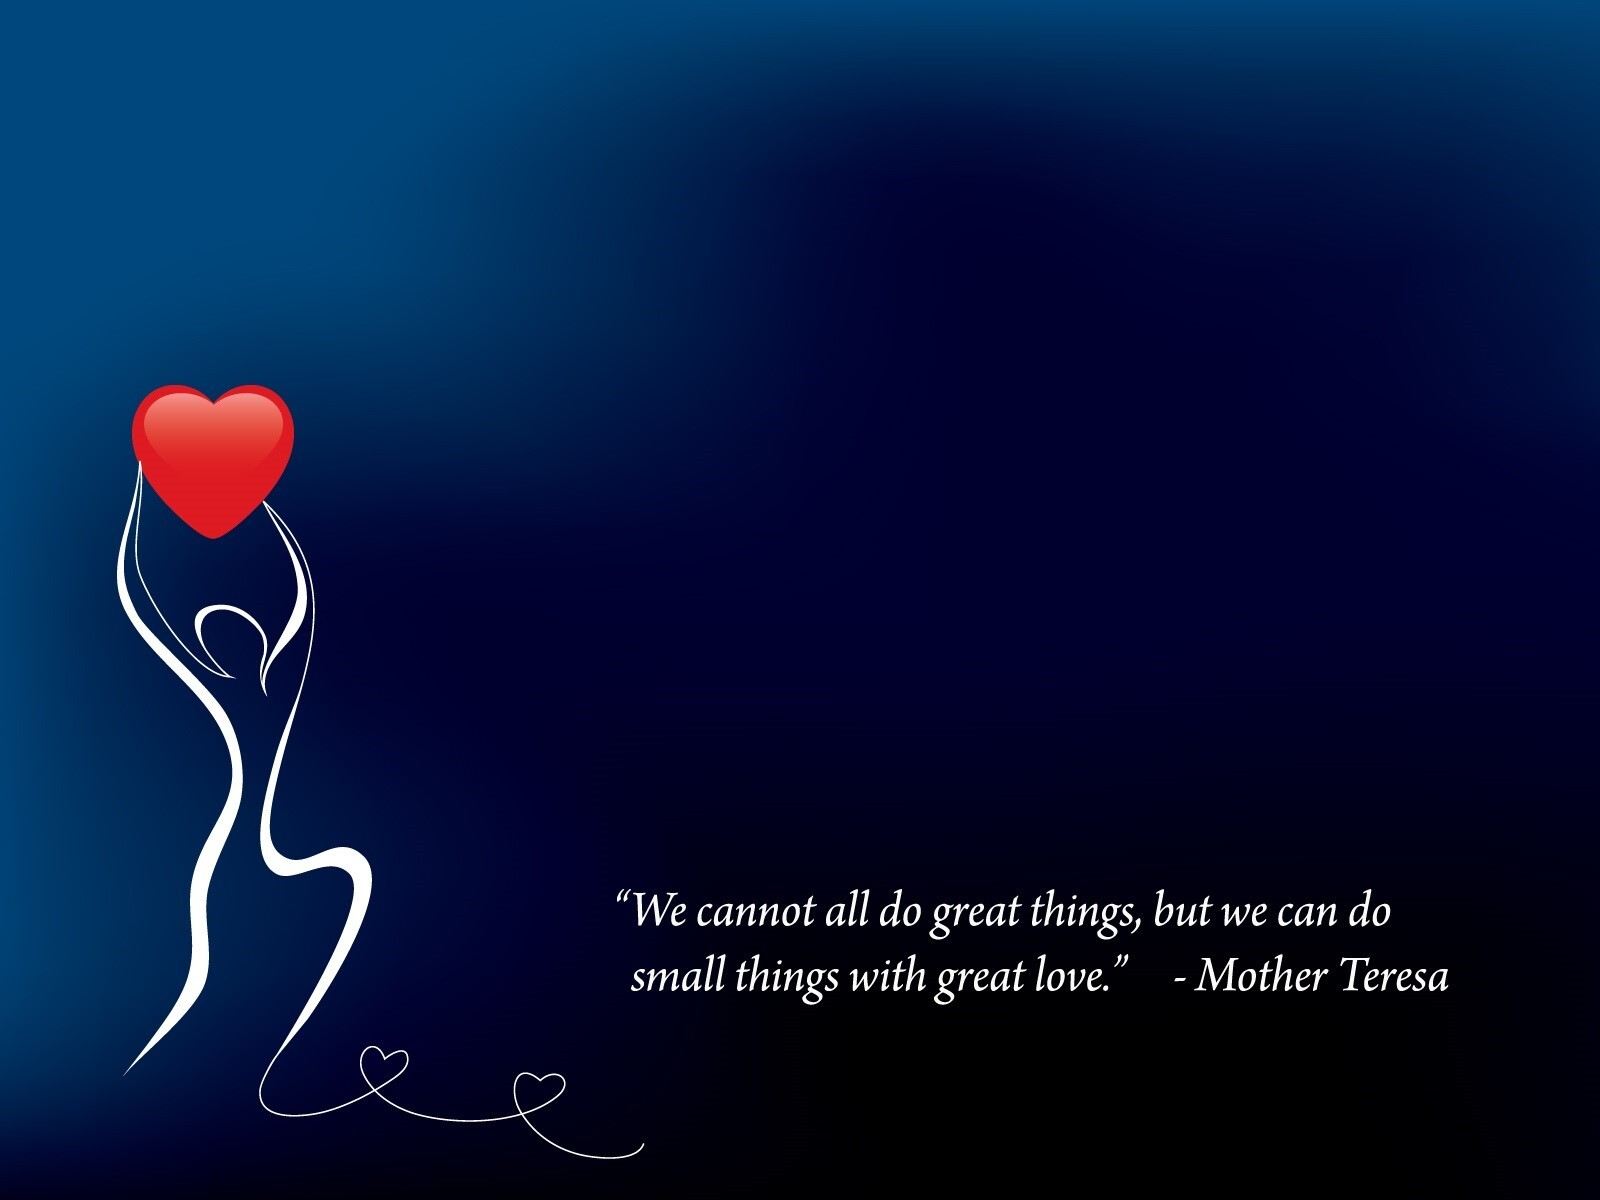 Mother Teresa Latest Quotes on Love Images HD Wallpapers